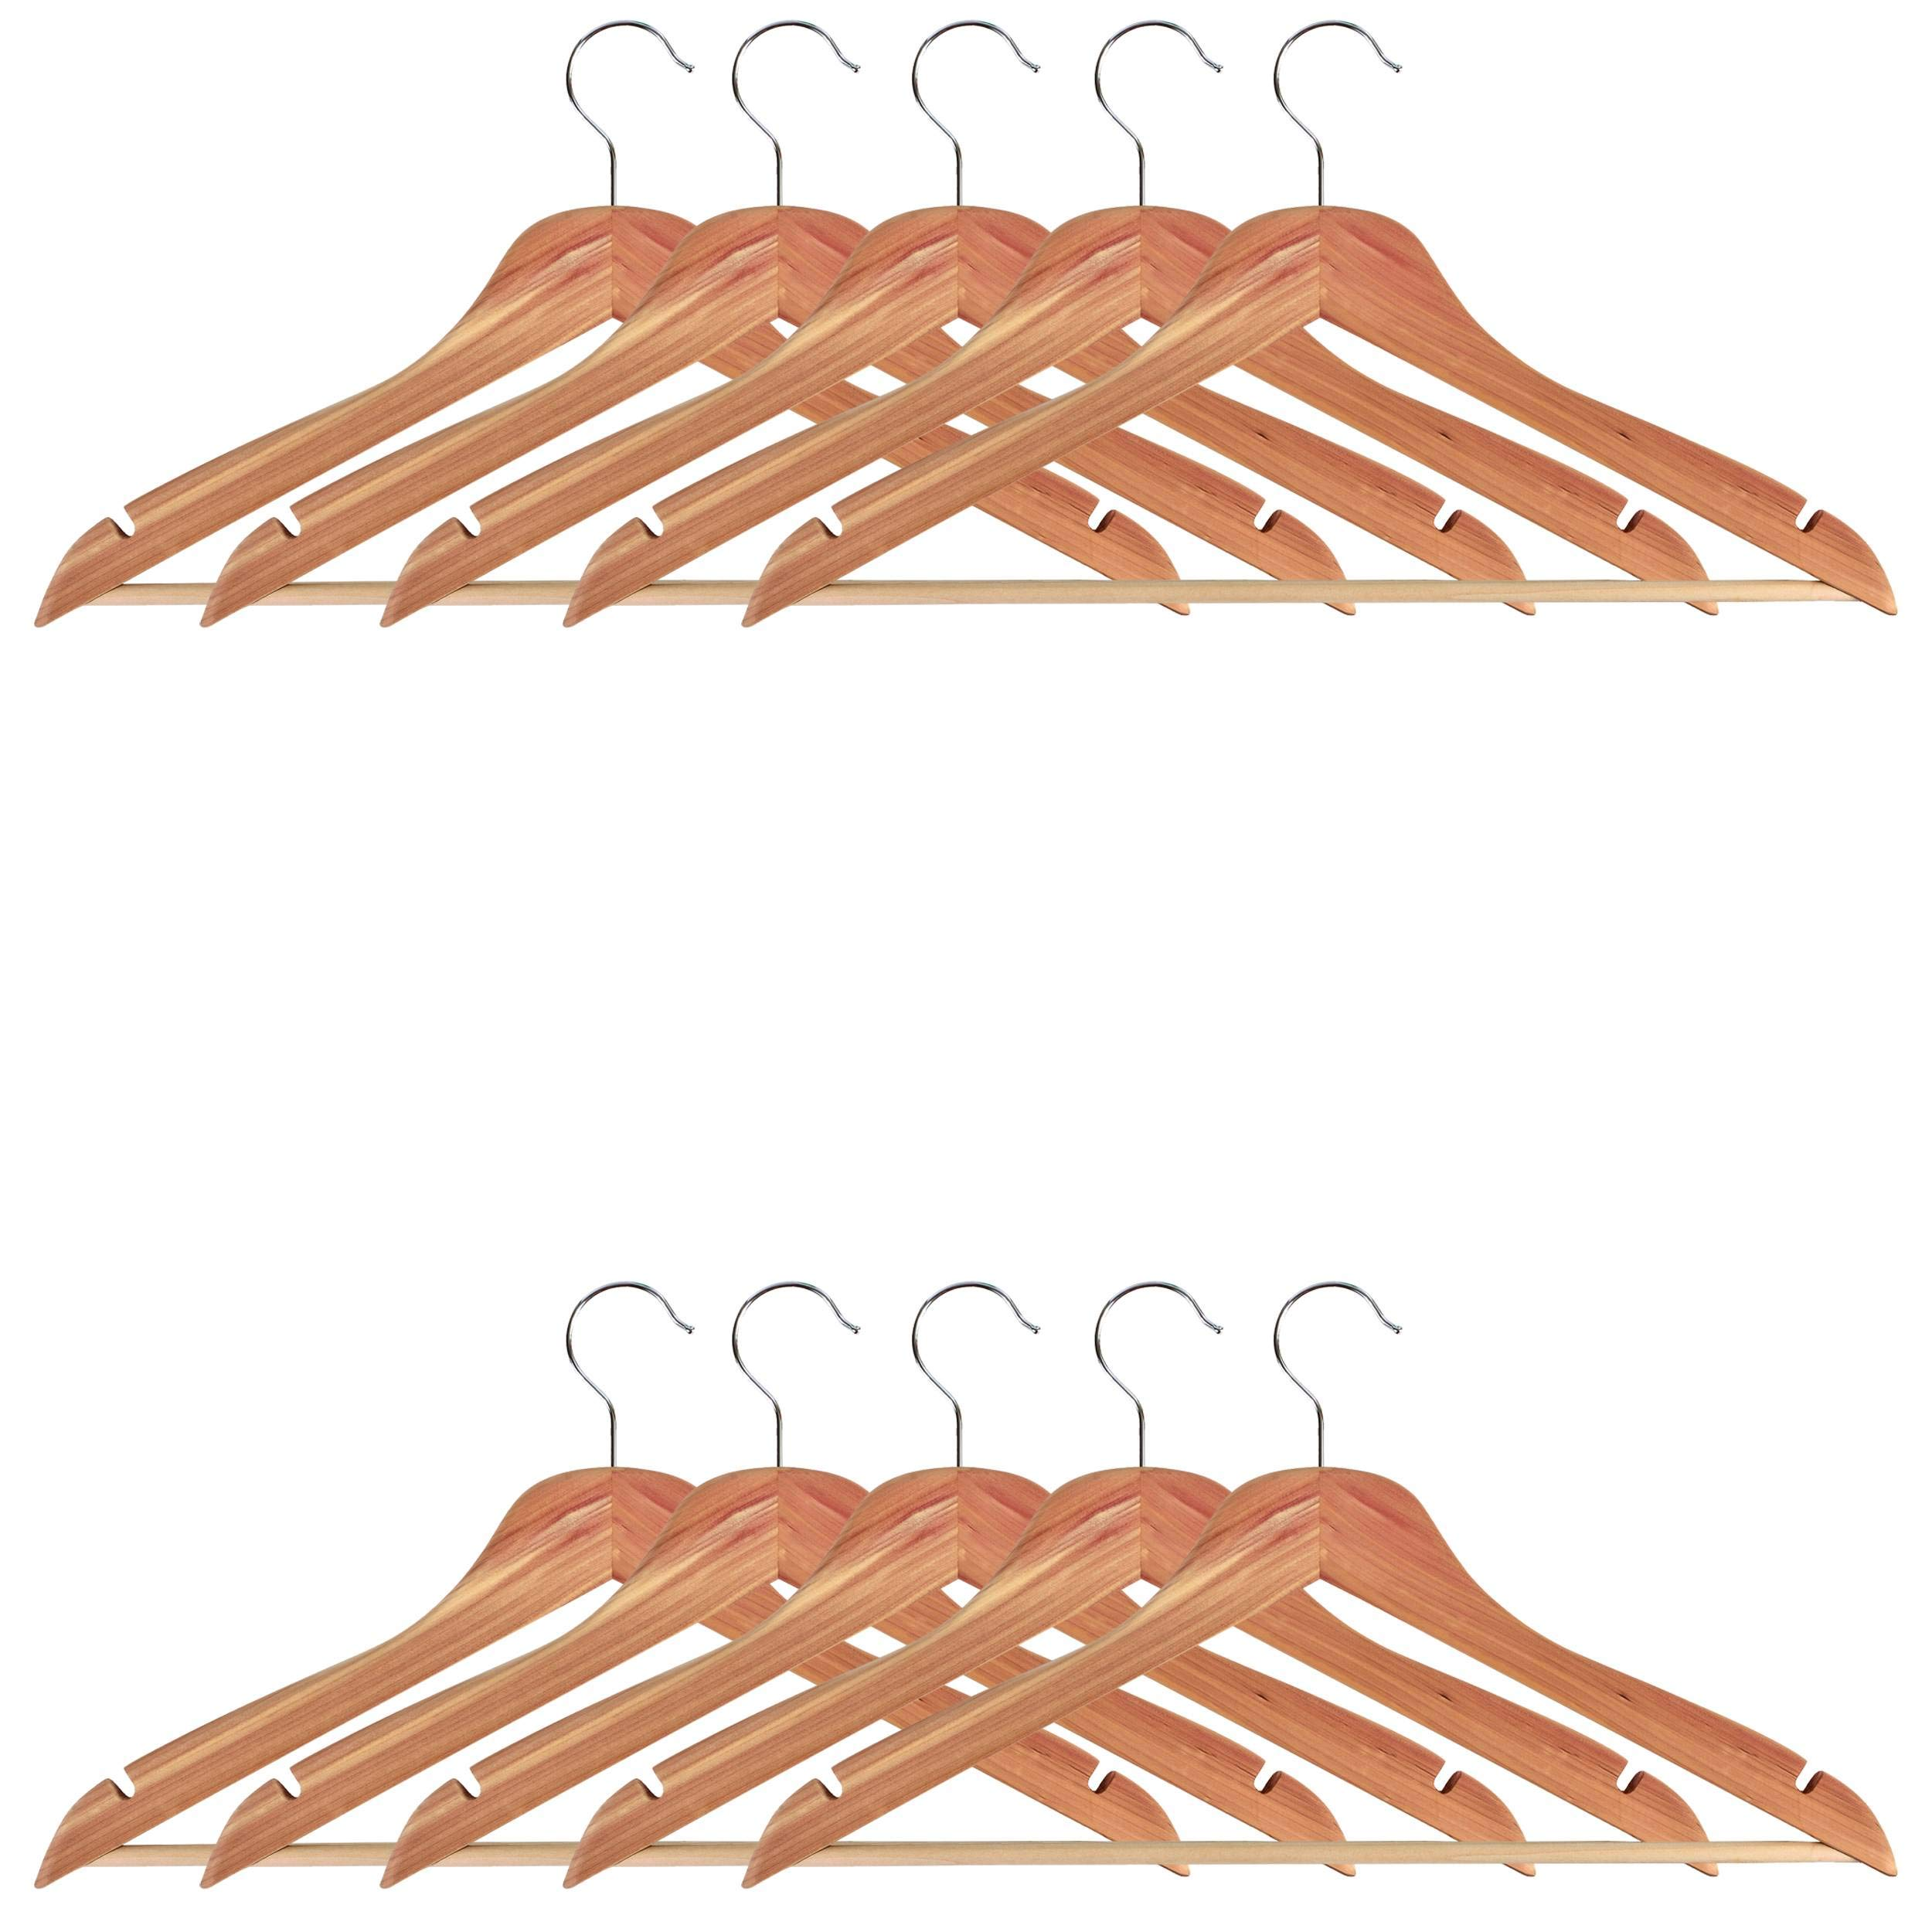 Milwerks Natural Cedar Wooden Clothes Hangers, 12 Pack - 17.5 Inch Wide Premium Heavy-Duty Wood Hanger with Notches and Non-Slip Pants Bar - Strong 360-Degree Swivel Chrome Hook